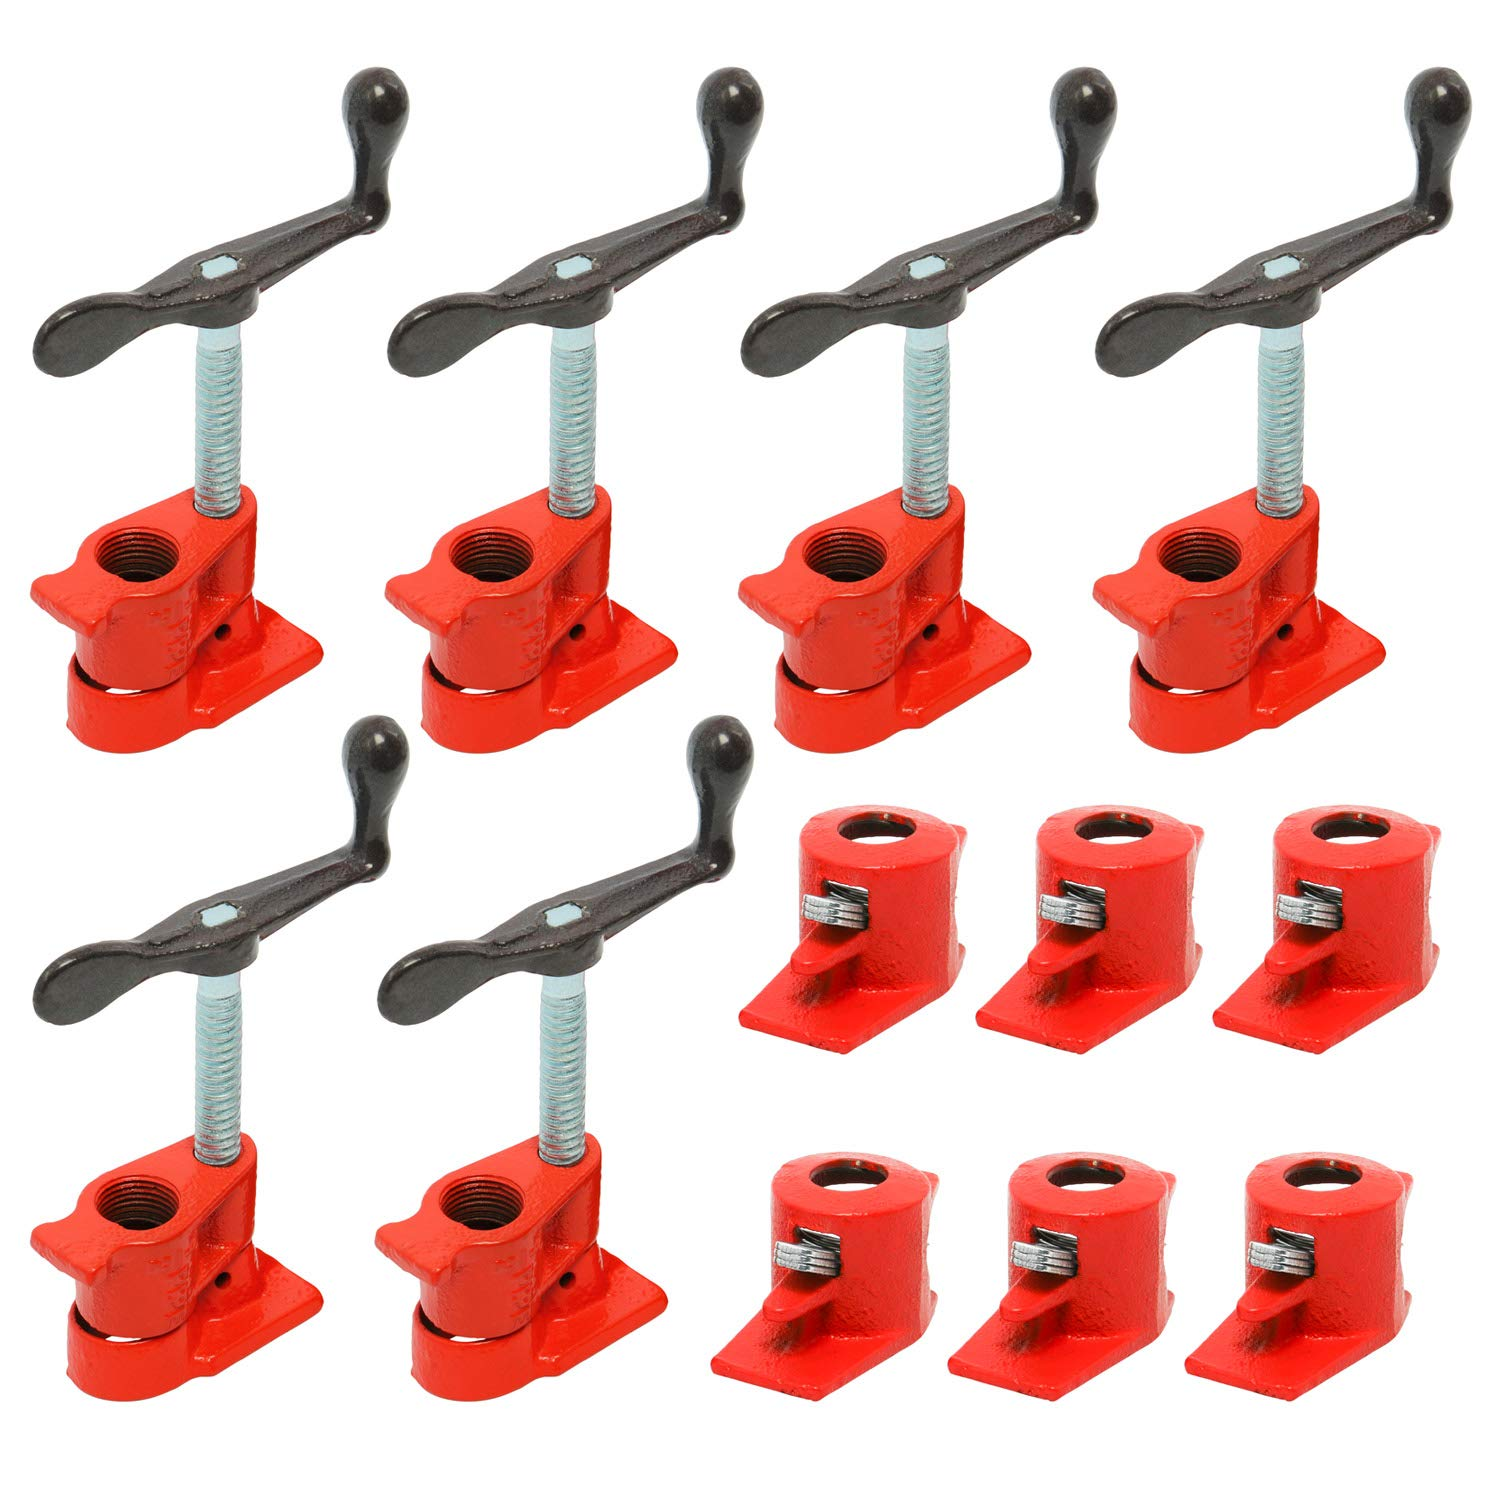 (6 Pack) 1/2'' Wood Gluing Pipe Clamp Set Heavy Duty PRO Woodworking Cast Iron by YaeKoo